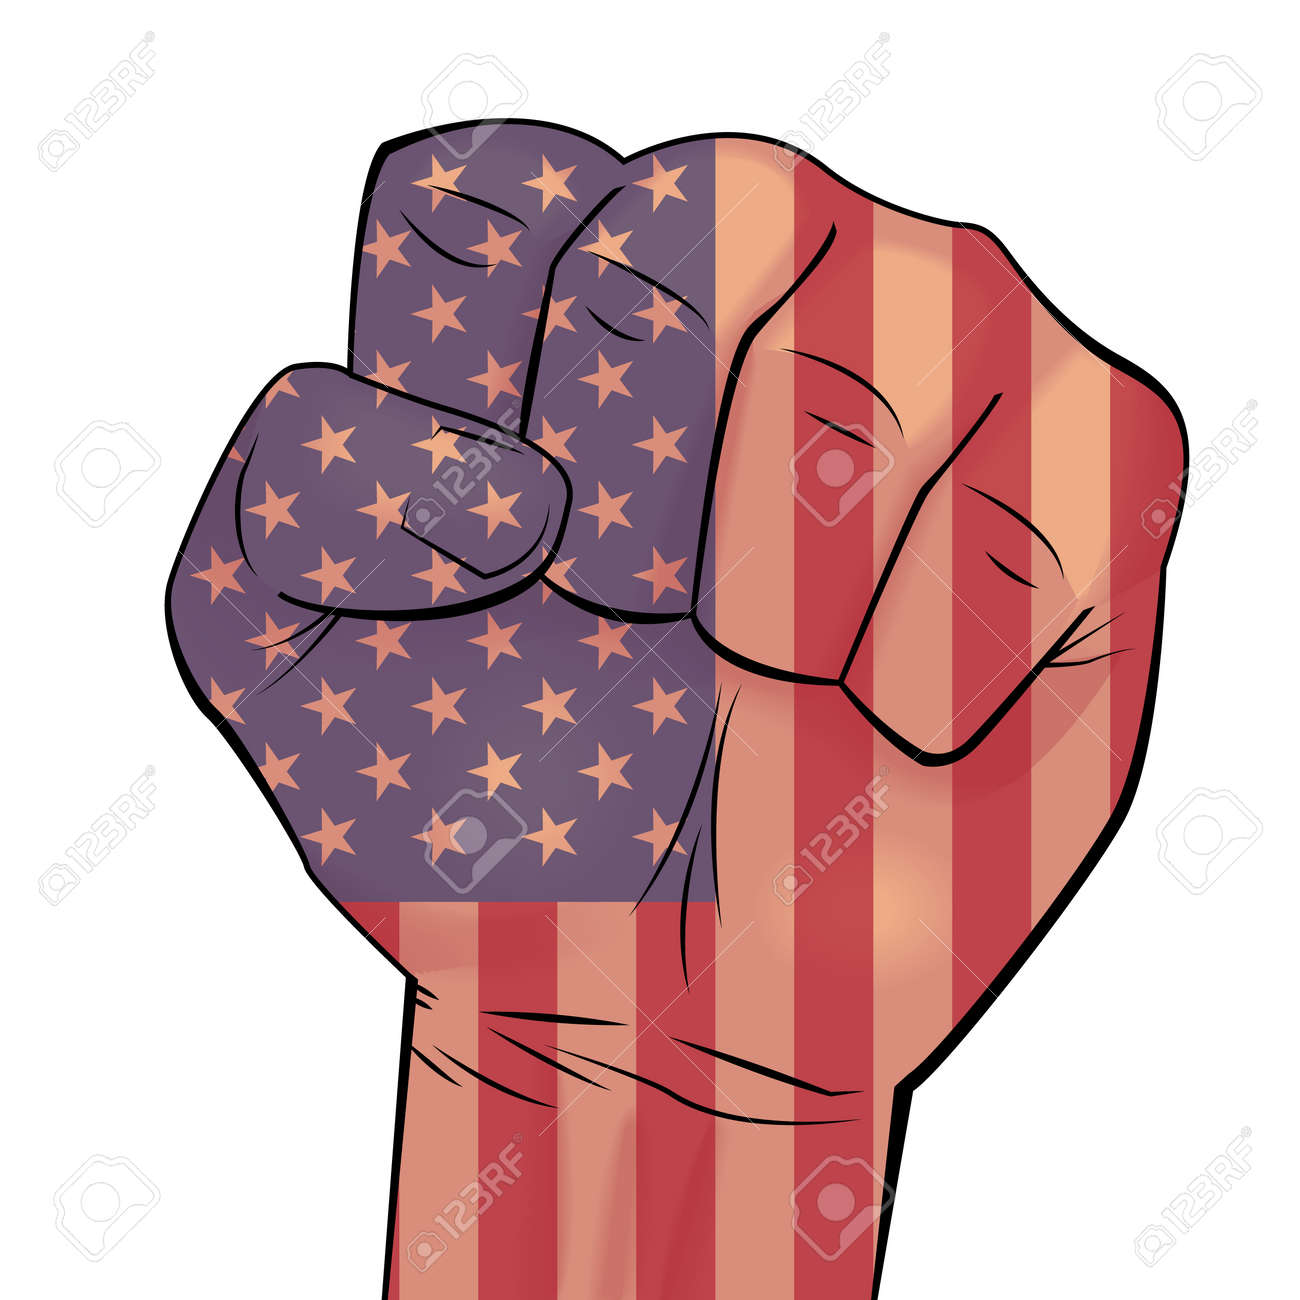 Man hand squeezed in fist with USA flag background. Can be used for business identity, print products, page and web decor, signs, placards, backgrounds or other design. Vector illustration. - 64720883